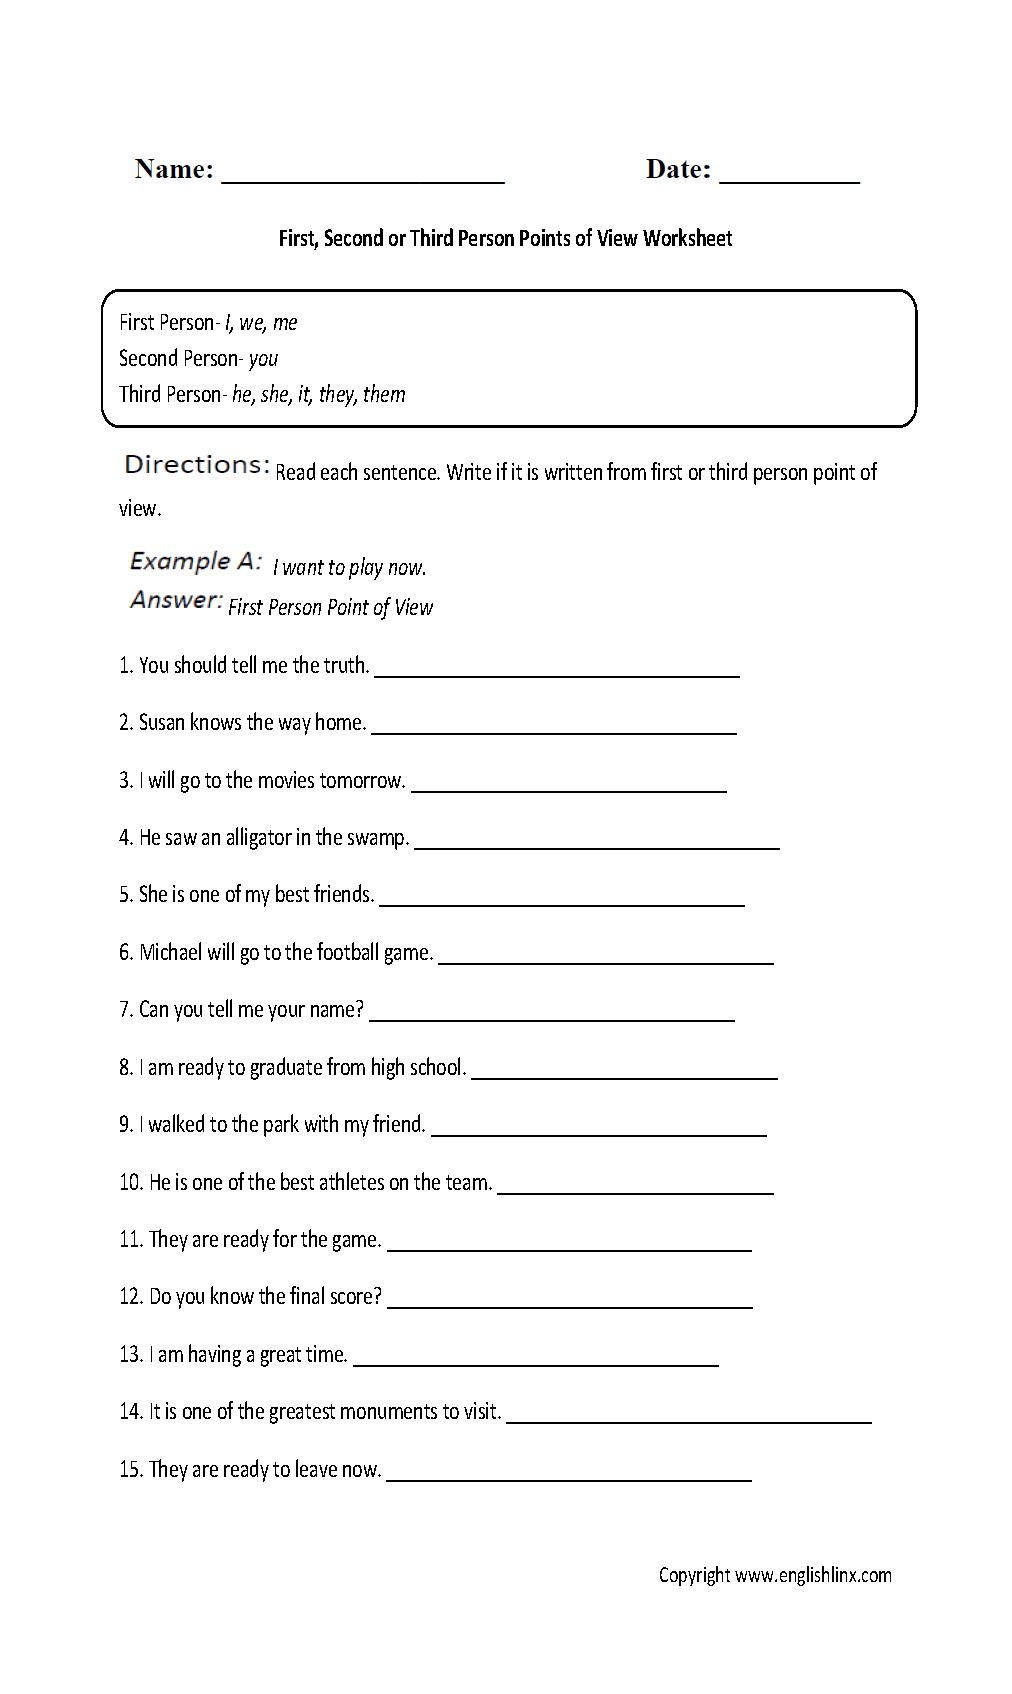 Weirdmailus  Nice Englishlinxcom  Point Of View Worksheets With Excellent Point Of View Worksheet With Delightful Fractions Addition Worksheets Also Slope And Rate Of Change Worksheets In Addition Mole Problems Worksheet With Answers And Math Bingo Worksheets As Well As Probablity Worksheets Additionally Free Math Worksheets For Third Grade From Englishlinxcom With Weirdmailus  Excellent Englishlinxcom  Point Of View Worksheets With Delightful Point Of View Worksheet And Nice Fractions Addition Worksheets Also Slope And Rate Of Change Worksheets In Addition Mole Problems Worksheet With Answers From Englishlinxcom